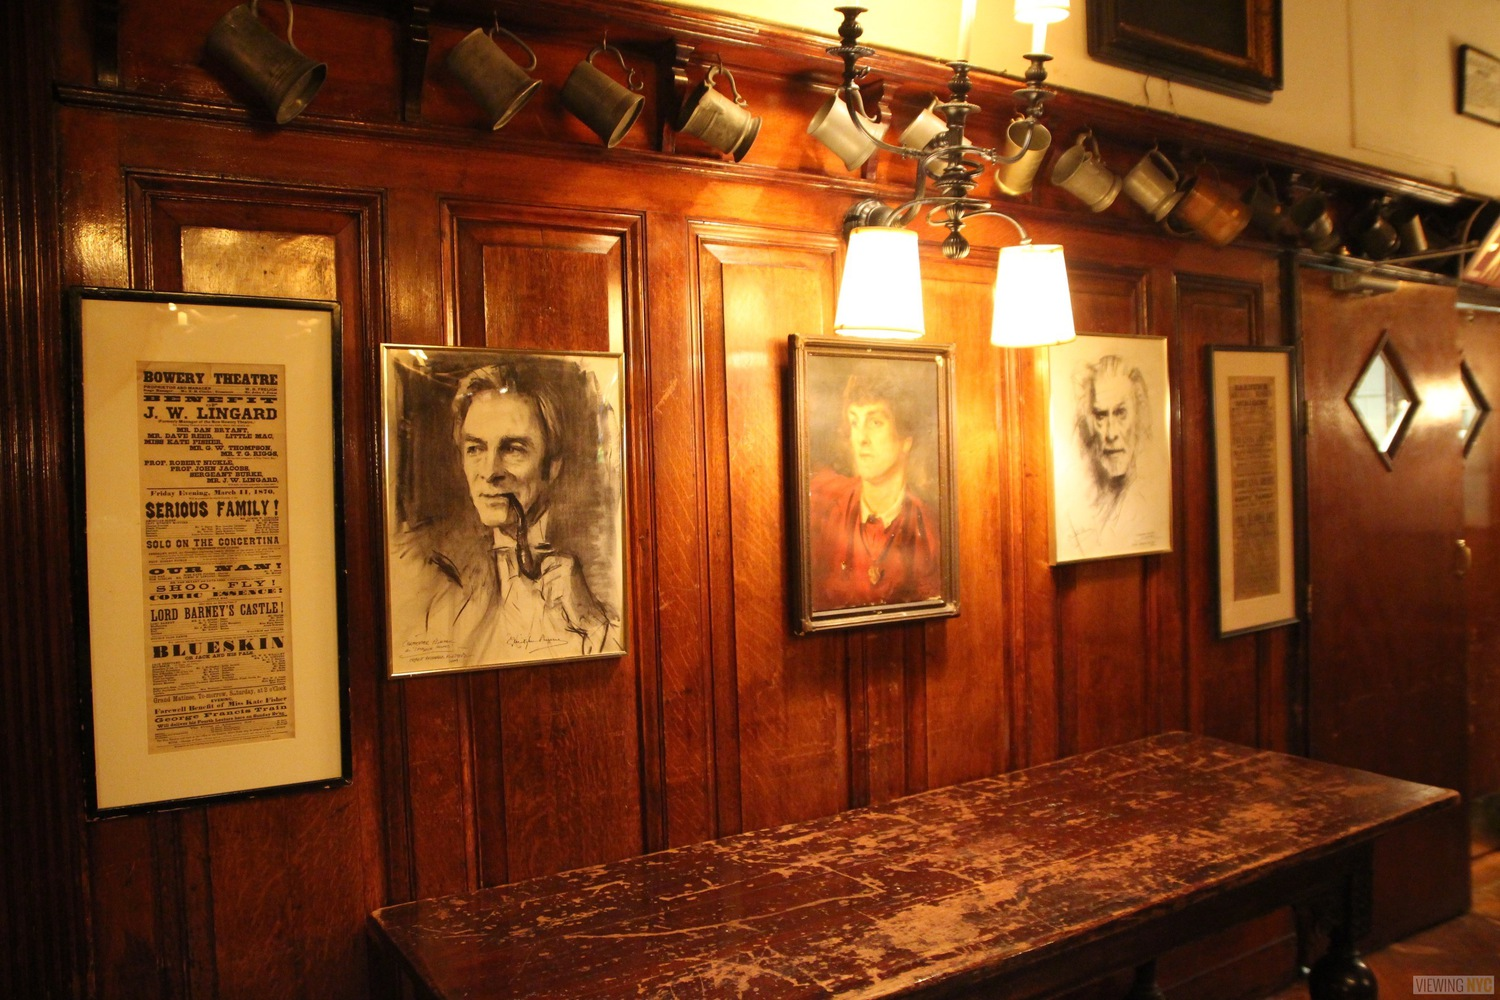 Portraits and Beer Mugs in Dining Room